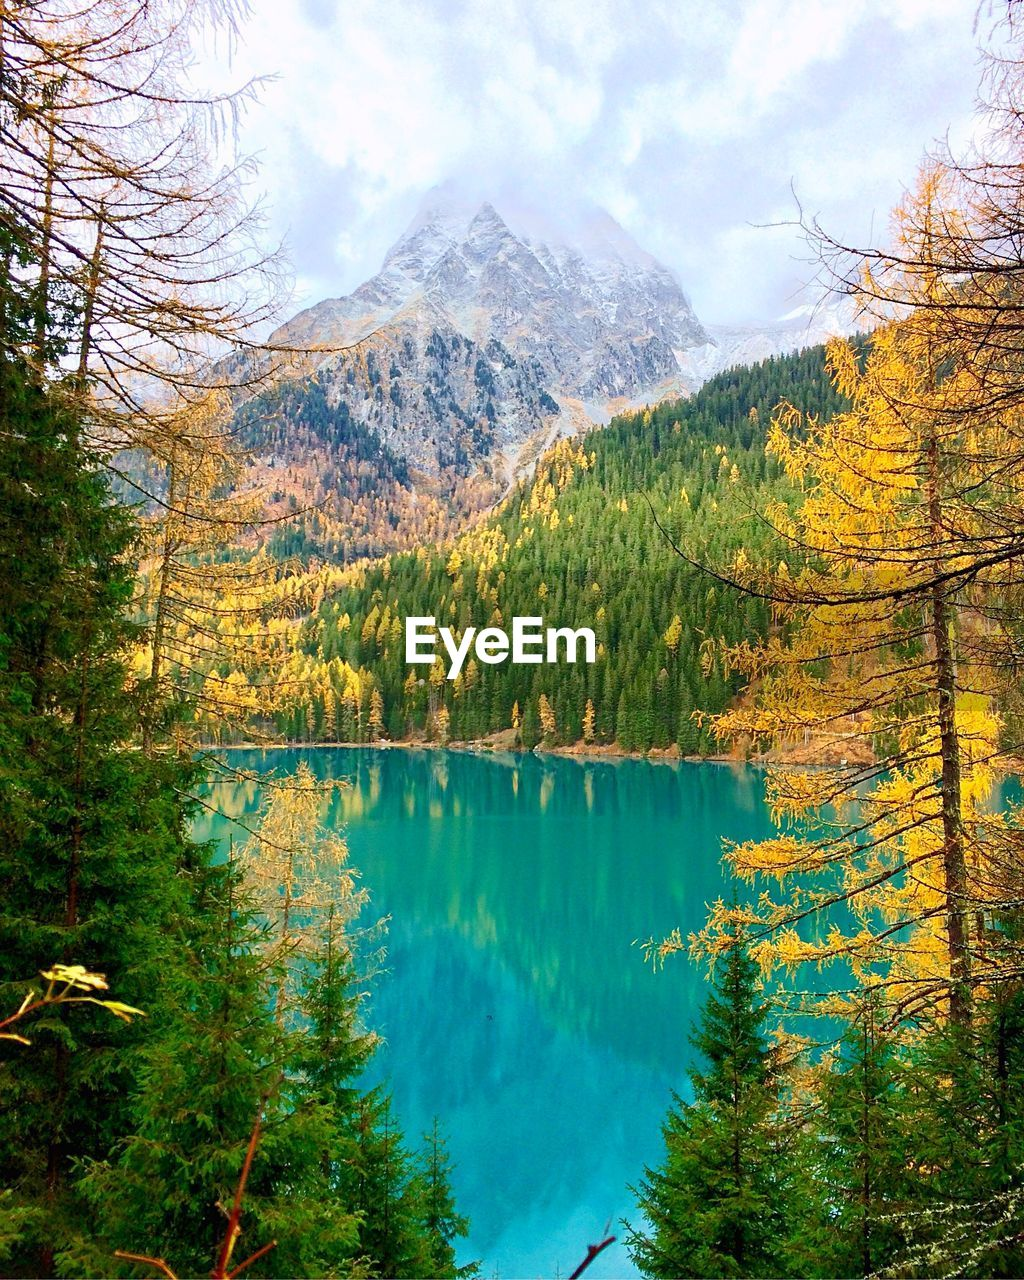 tree, beauty in nature, scenics - nature, water, mountain, plant, tranquility, tranquil scene, lake, sky, reflection, nature, idyllic, non-urban scene, no people, autumn, day, cloud - sky, change, outdoors, coniferous tree, turquoise colored